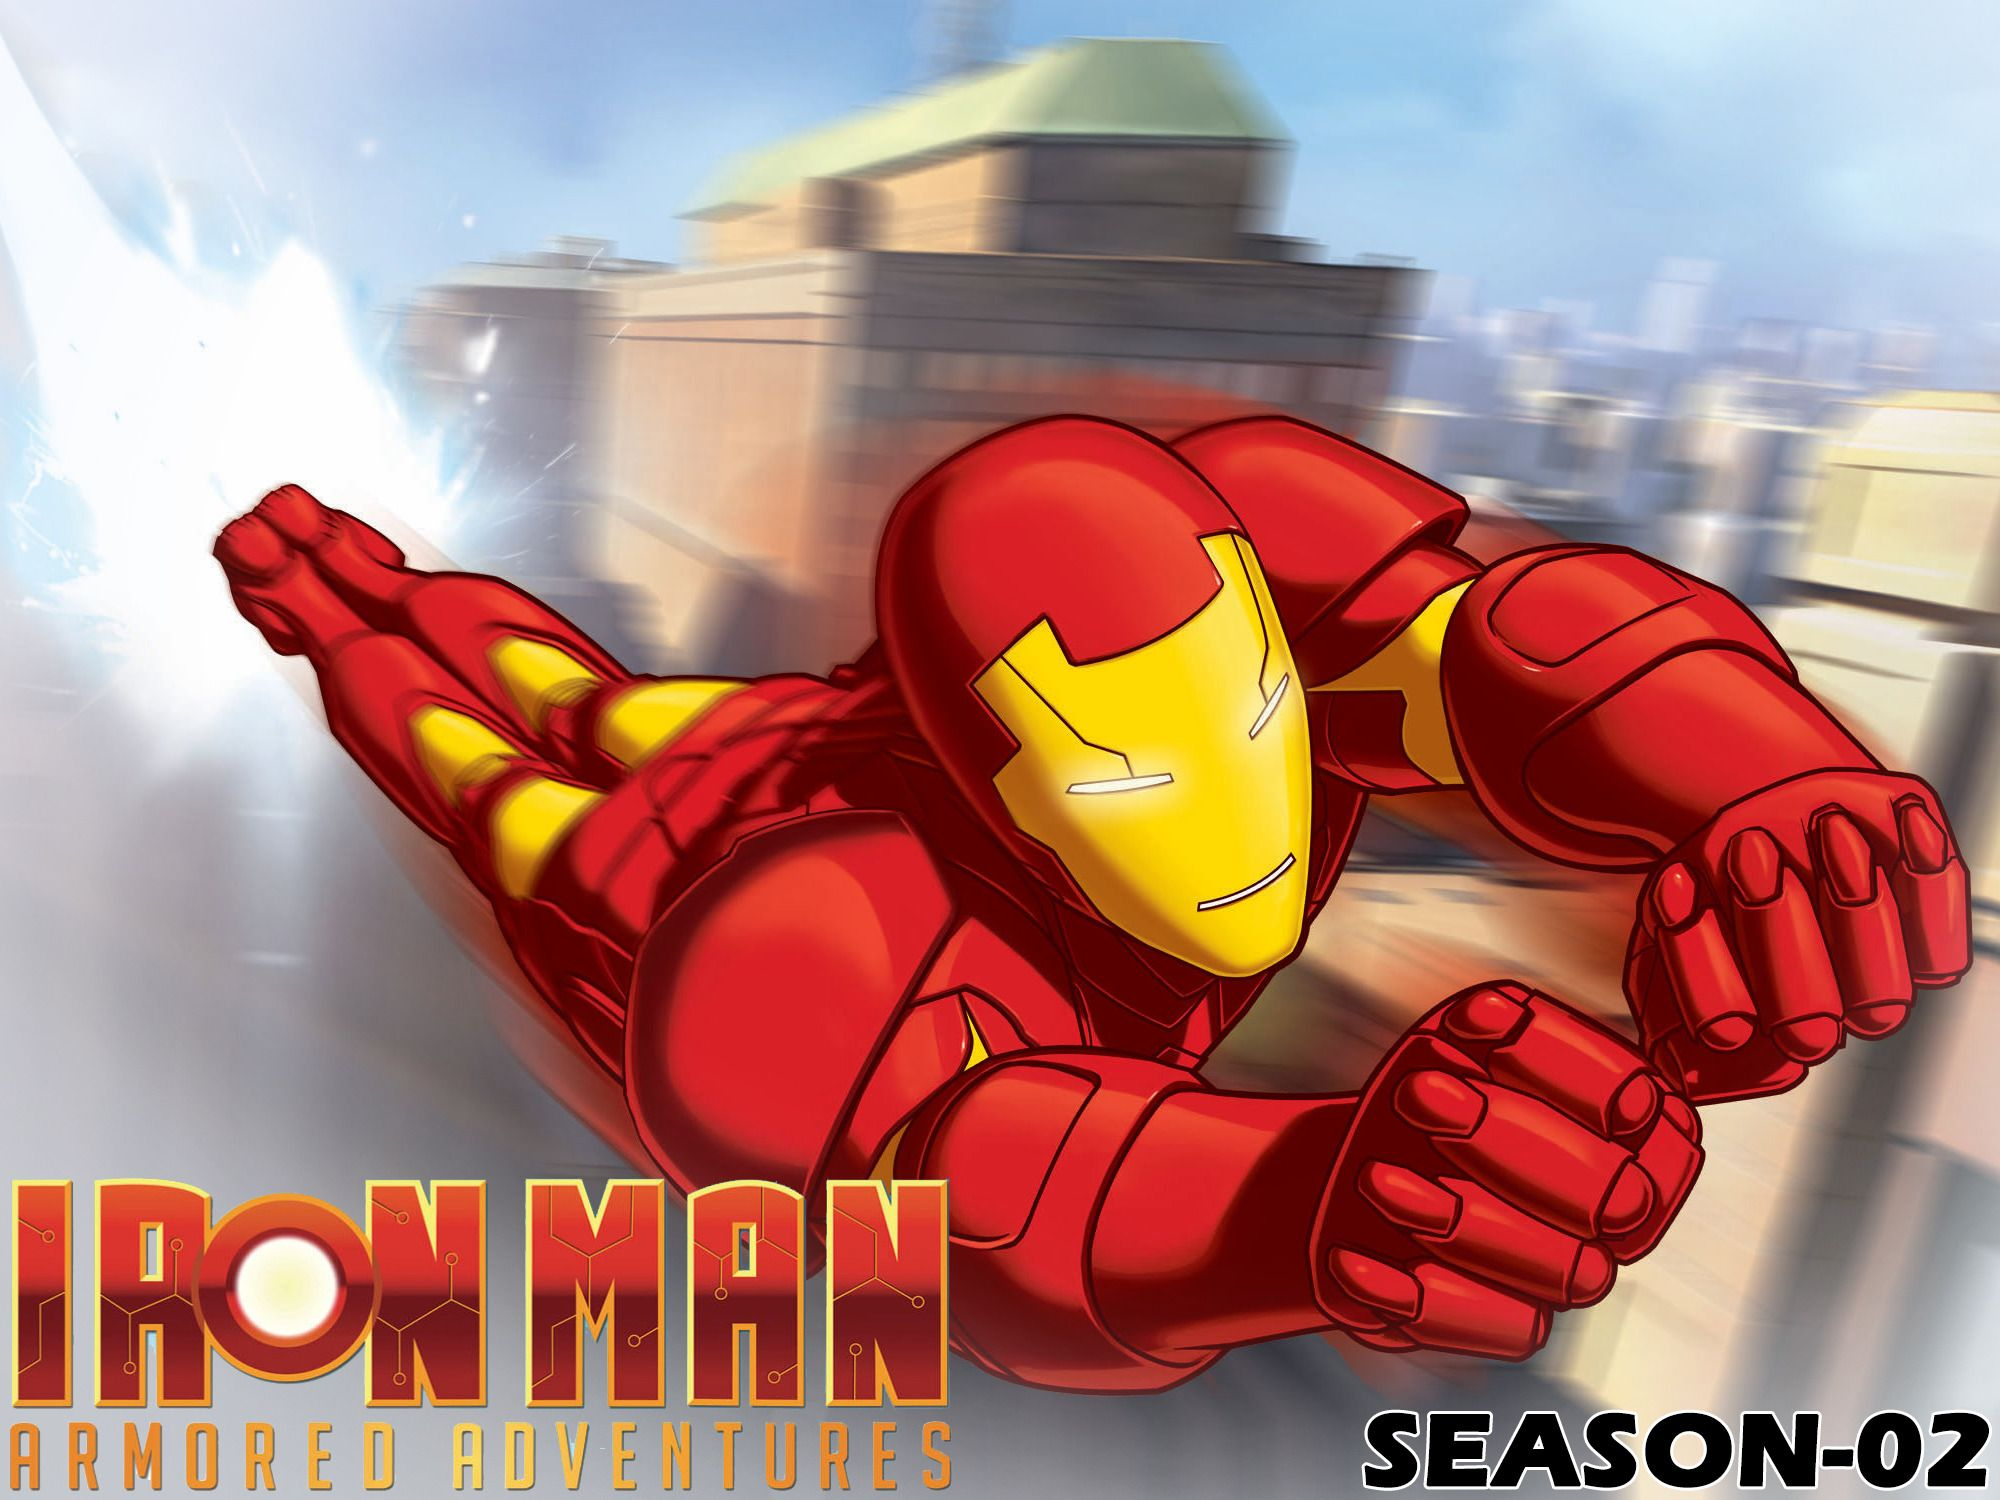 Prime Video: Iron Man: Armored Adventures